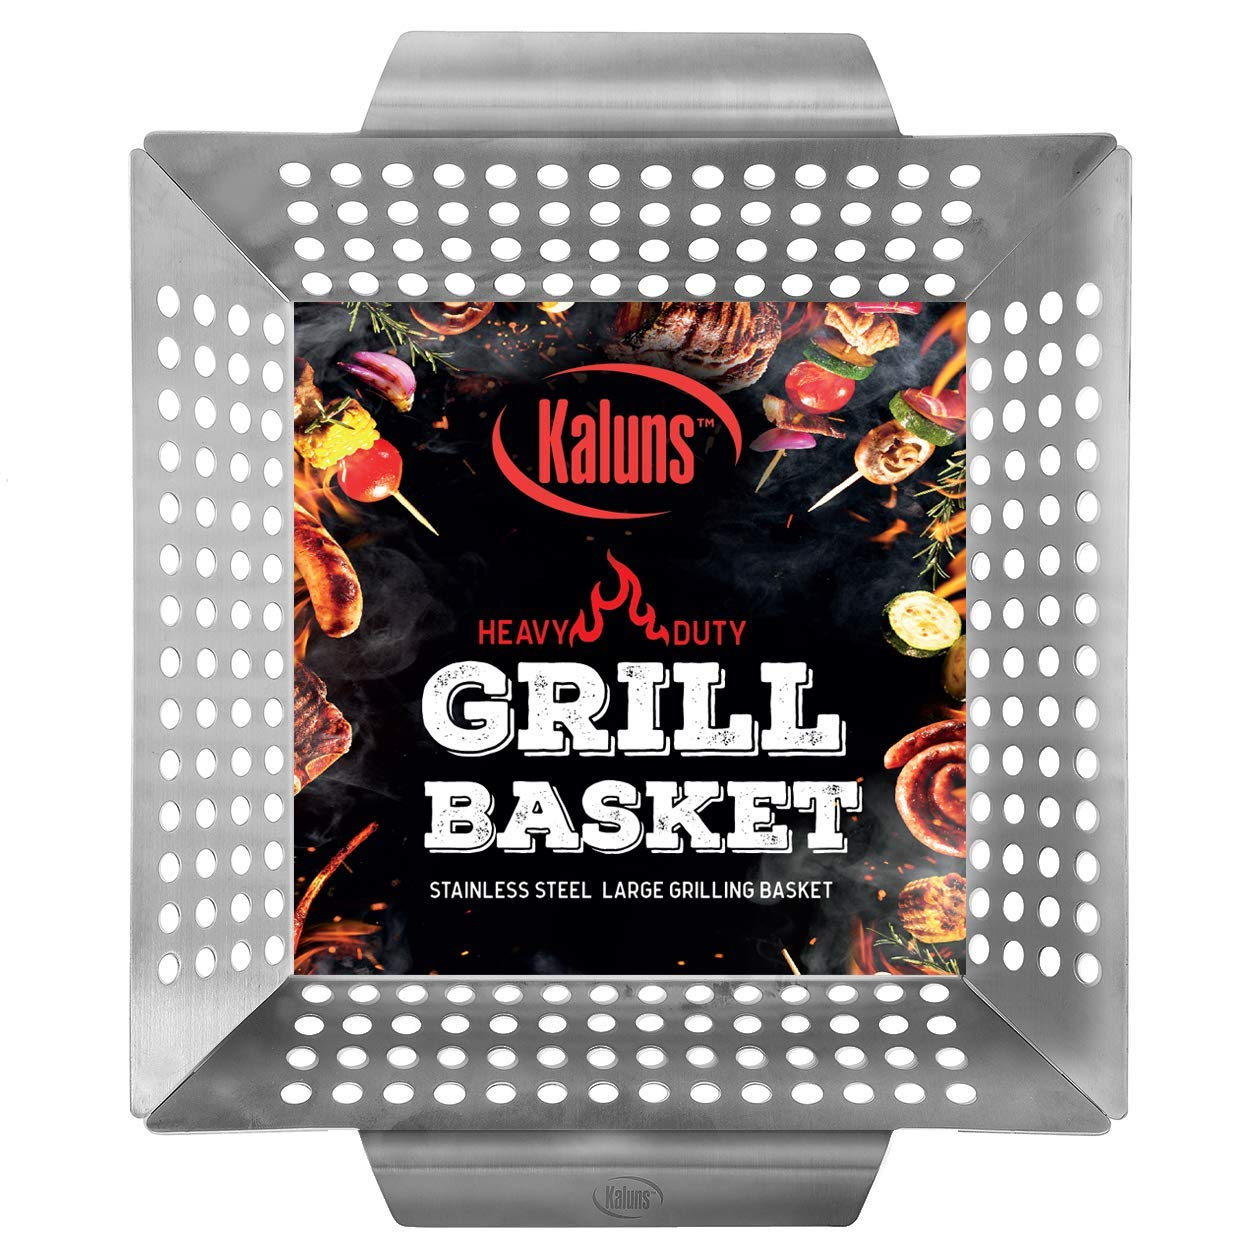 Kaluns Grill Basket - Best Grilling Basket for Vegetables and Shrimp - Heavy-Duty Stainless Steel Material - Perfect Size Fits Most Grills - Great for BBQ or Oven Use BBQ Accesso by Kaluns